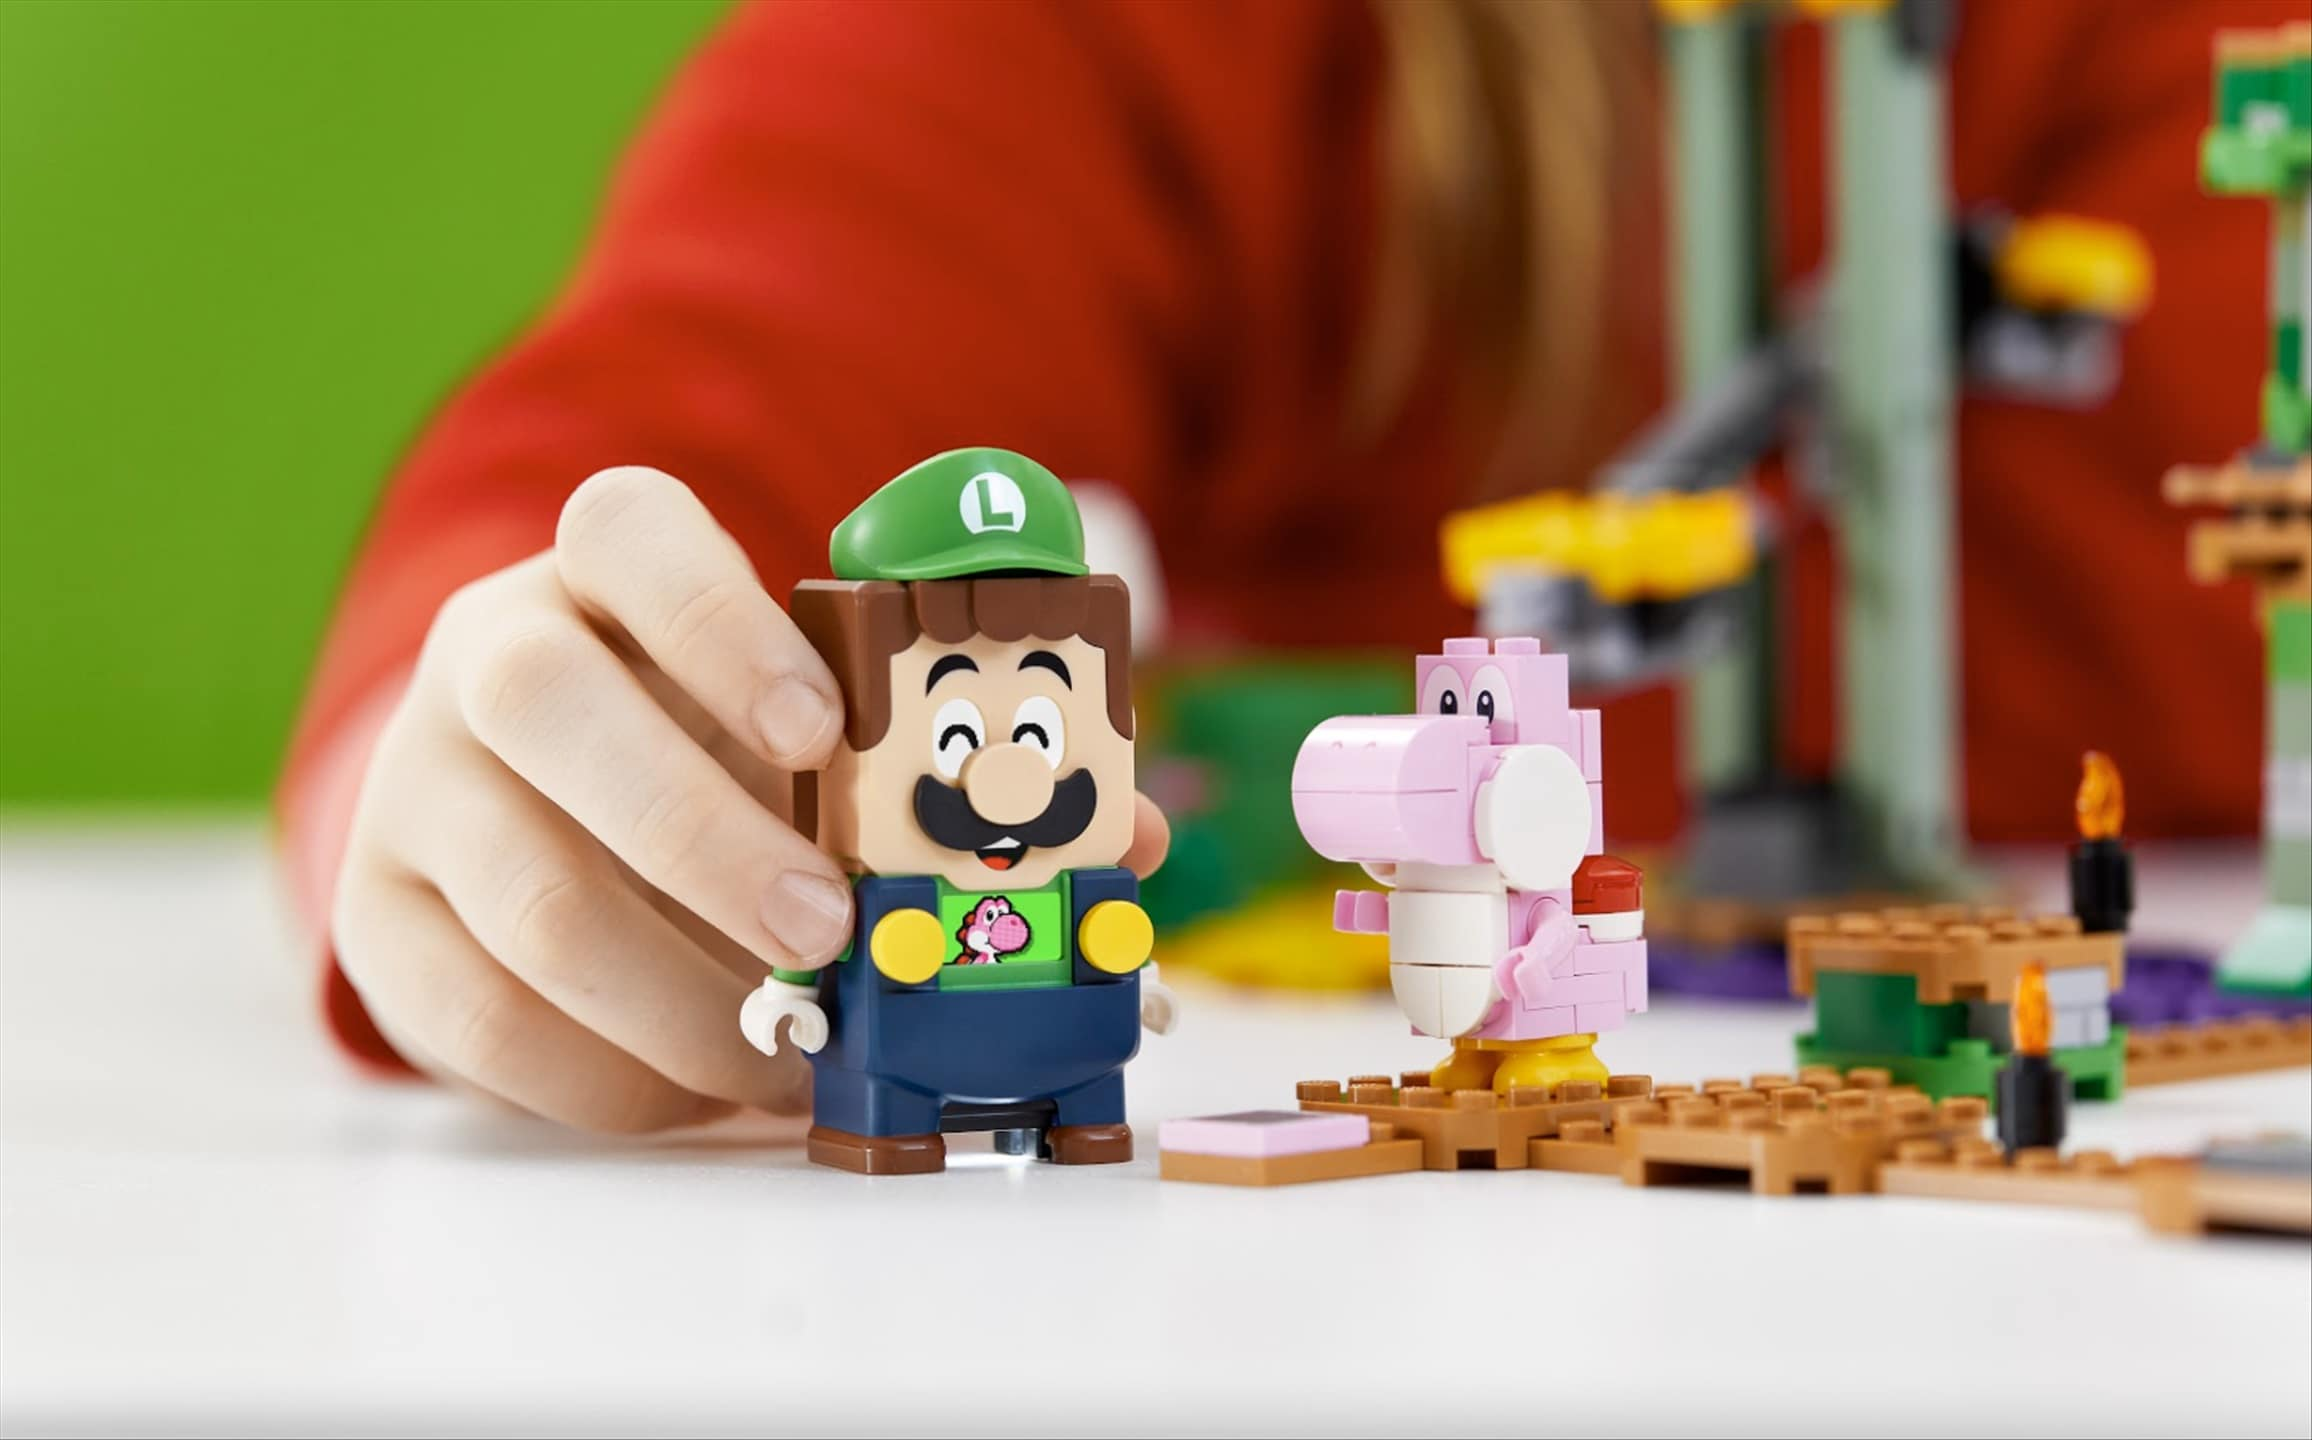 Luigi is joining LEGO Super Mario